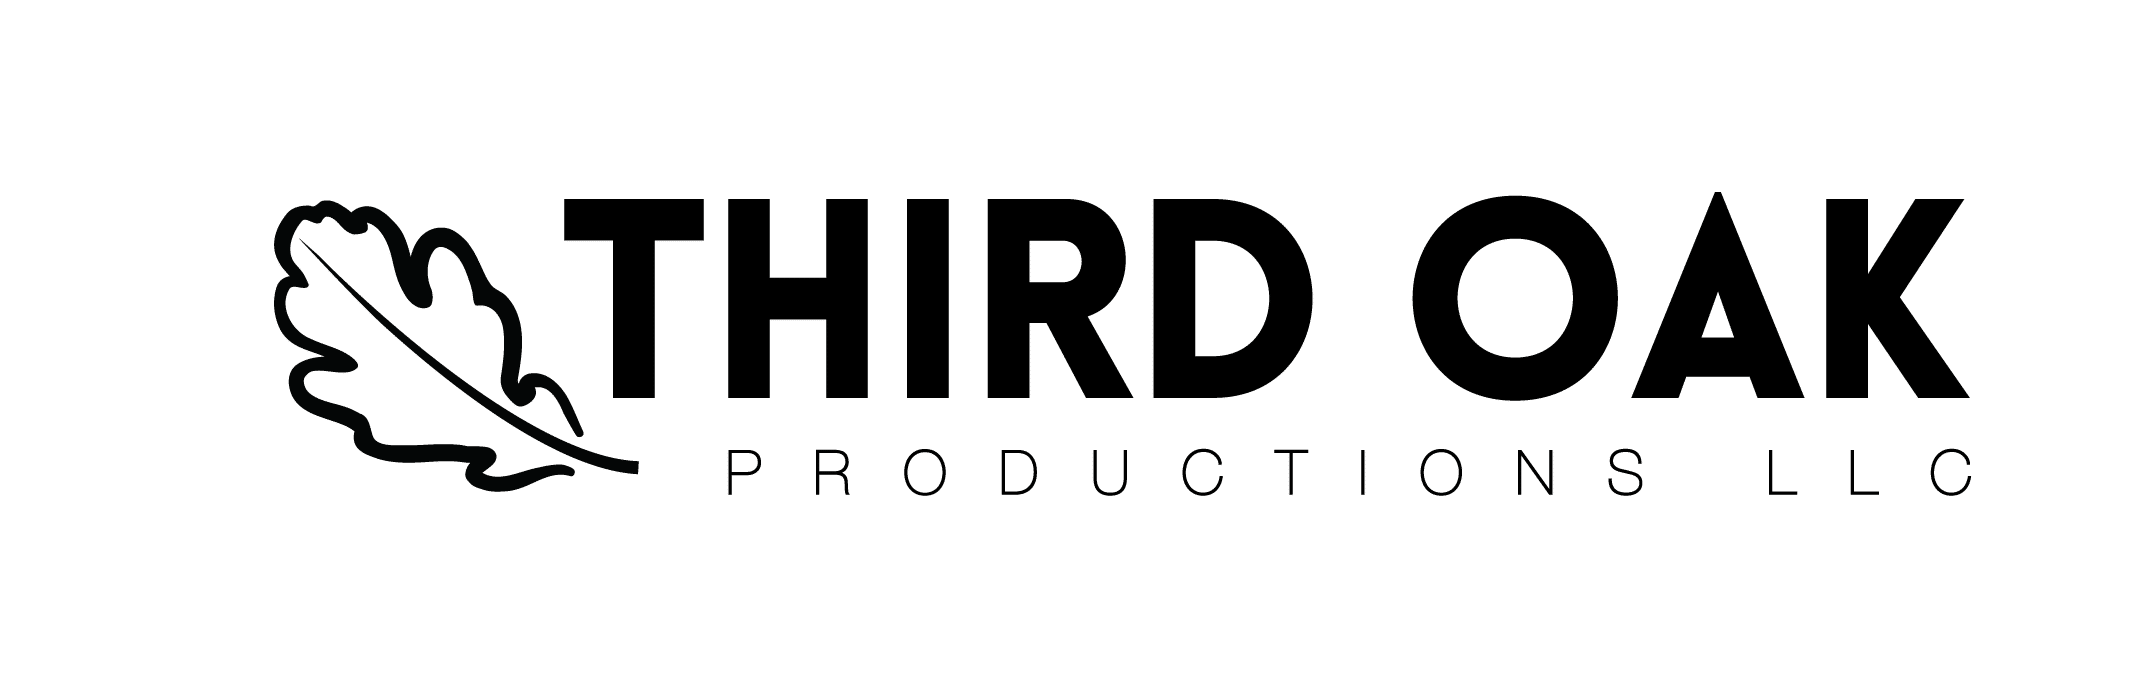 Third Oak Productions LLC | Orlando | Miami | Tampa | Los Angeles